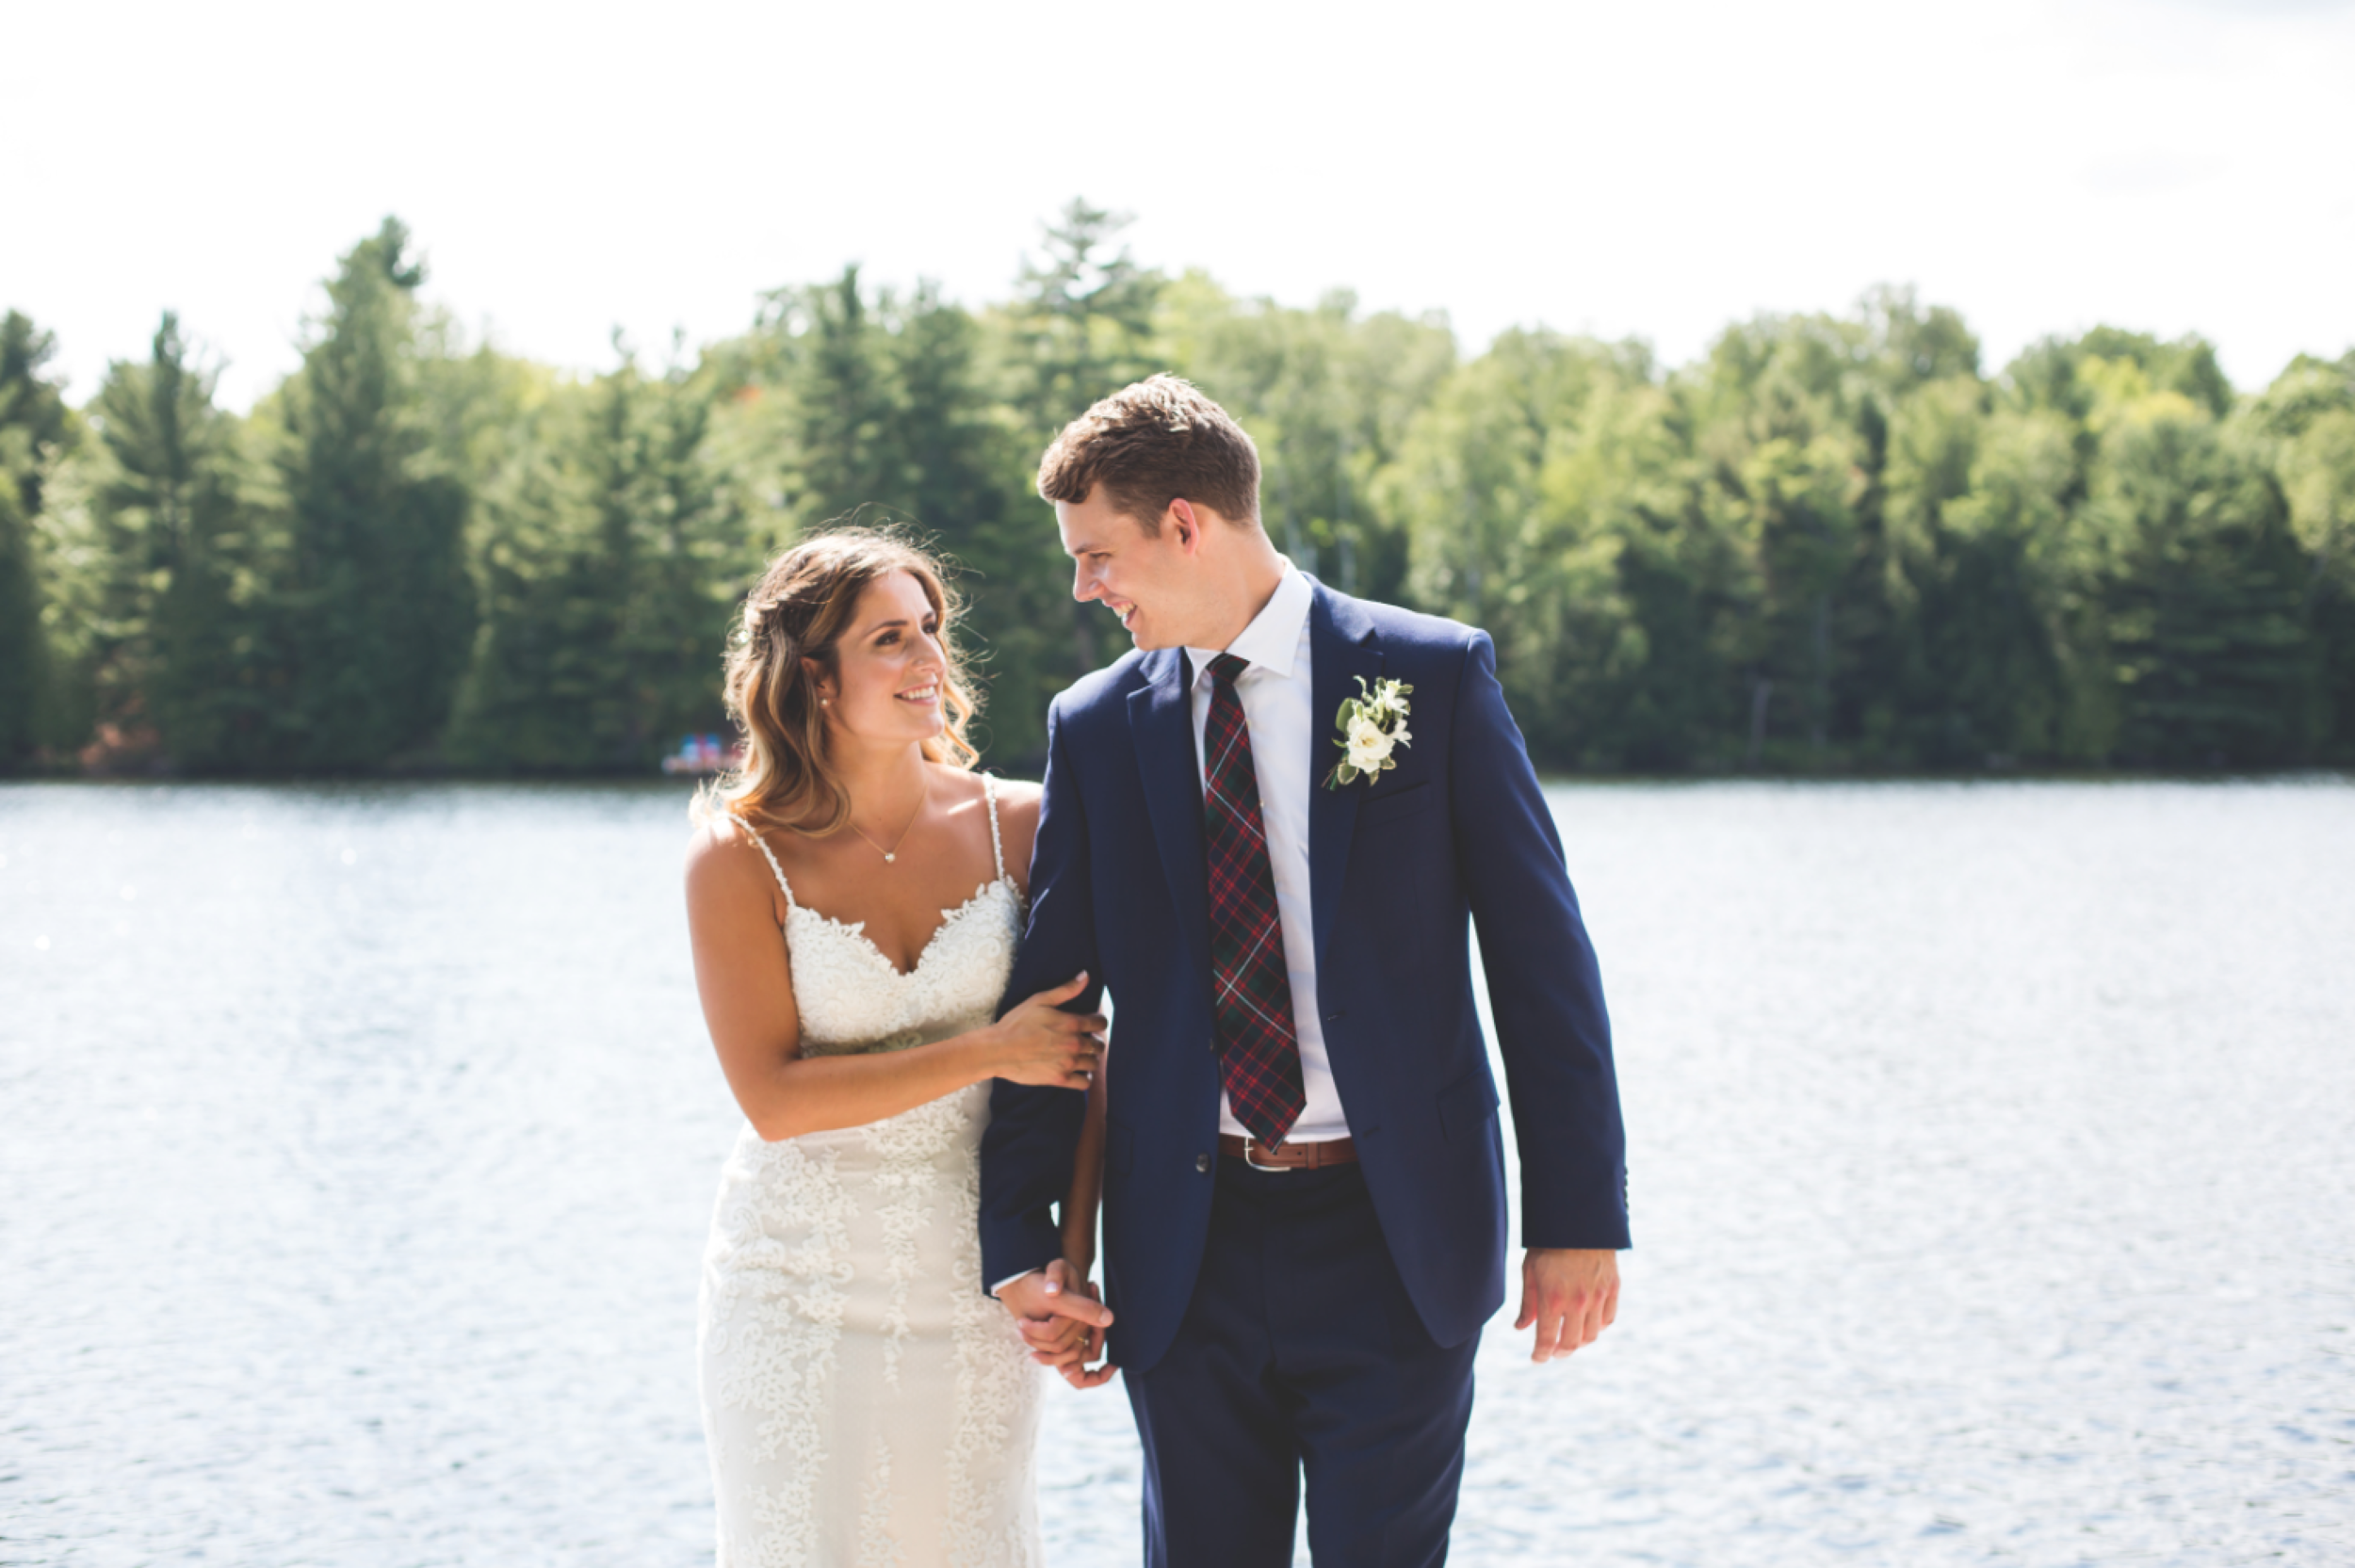 Wedding-Photos-Muskoka-Clevelands-House-Photographer-Wedding-Hamilton-GTA-Niagara-Oakville-Moments-by-Lauren-Photography-Photo-Image-43.png